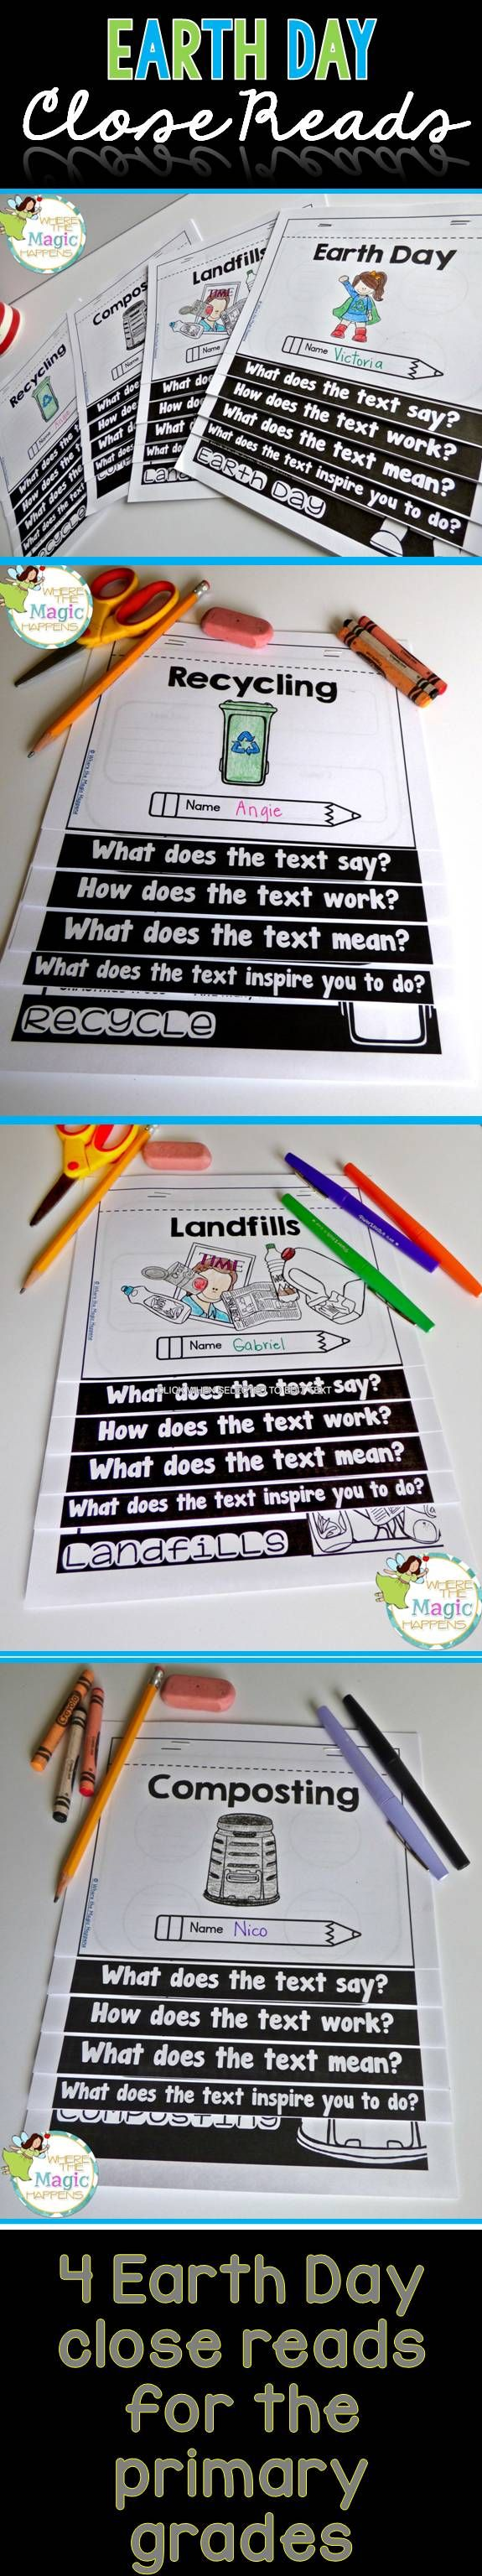 Earth Day close reading mini-pack. This set of foldables will provide your students with deeper, strategic skills while targeting social studies content. This pack is loaded with text -dependent questions and follows the research of Fisher & Frey.